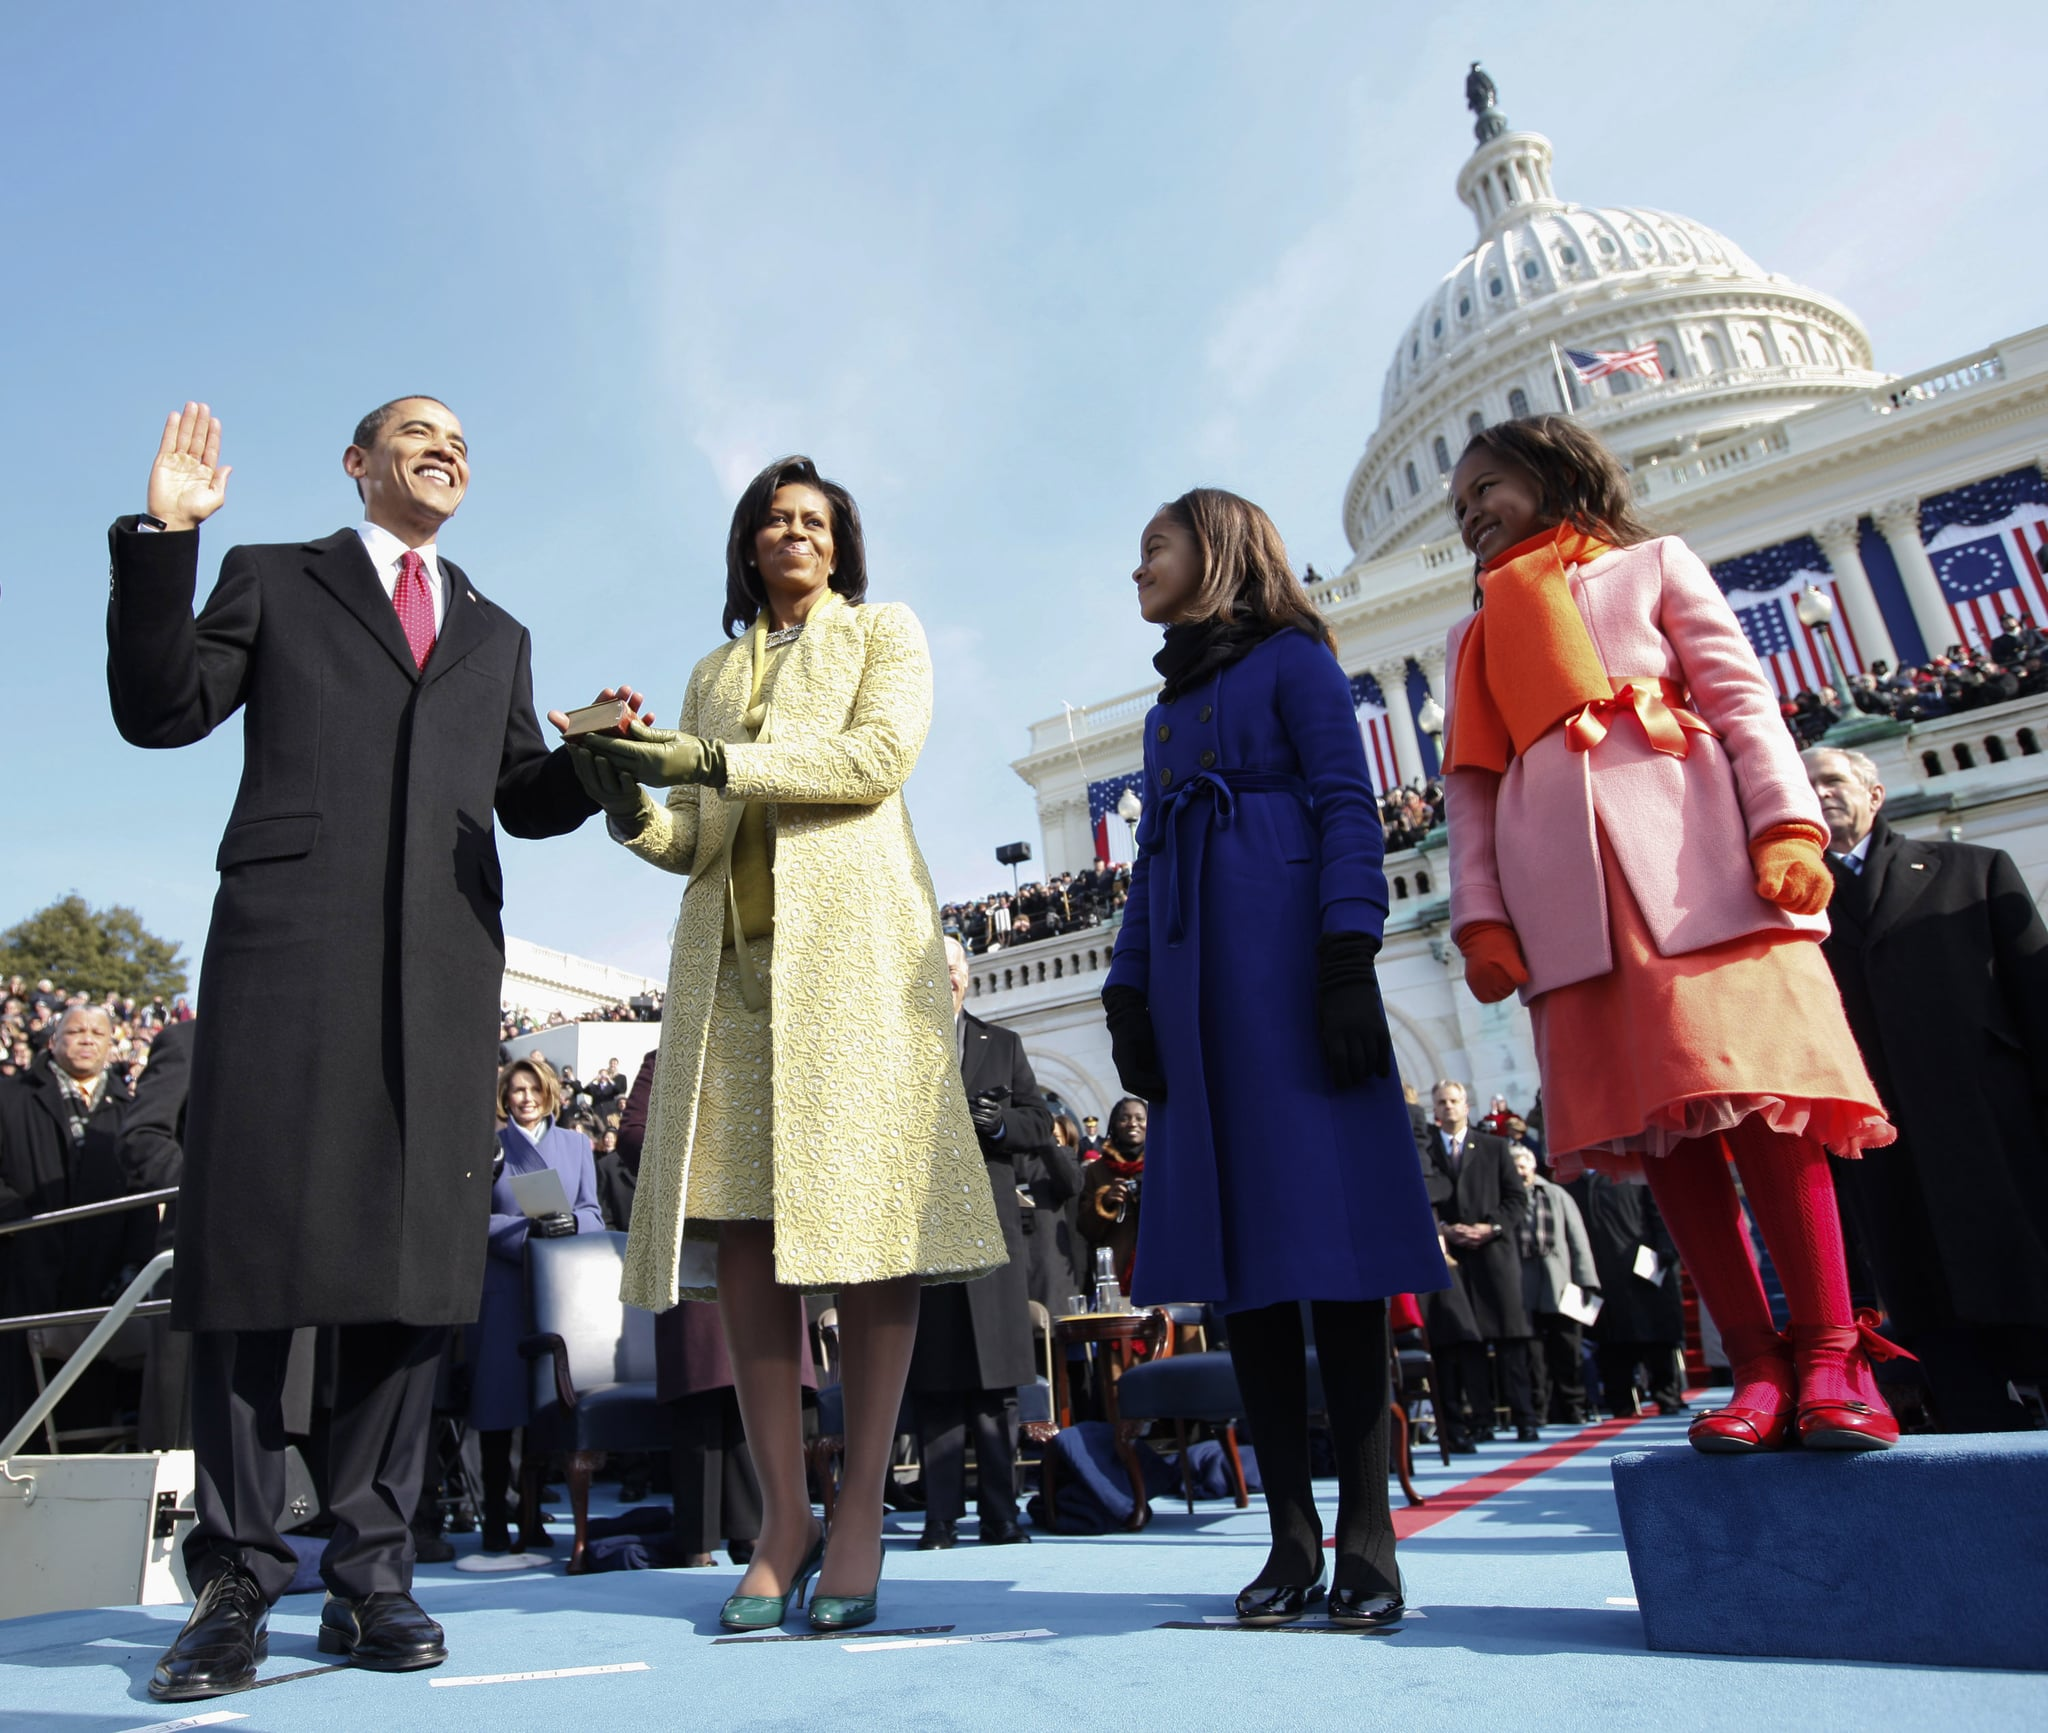 Barack Obama (L) takes the oath of office as the 44th US President with his wife, Michelle, by his side at the US Capitol in Washington, DC, January 20, 2009. The Obama's were joined by their daughters Malia (2ndR) and Sasha. Chuck Kennedy/Pool (Photo credit should read CHUCK KENNEDY/AFP via Getty Images)